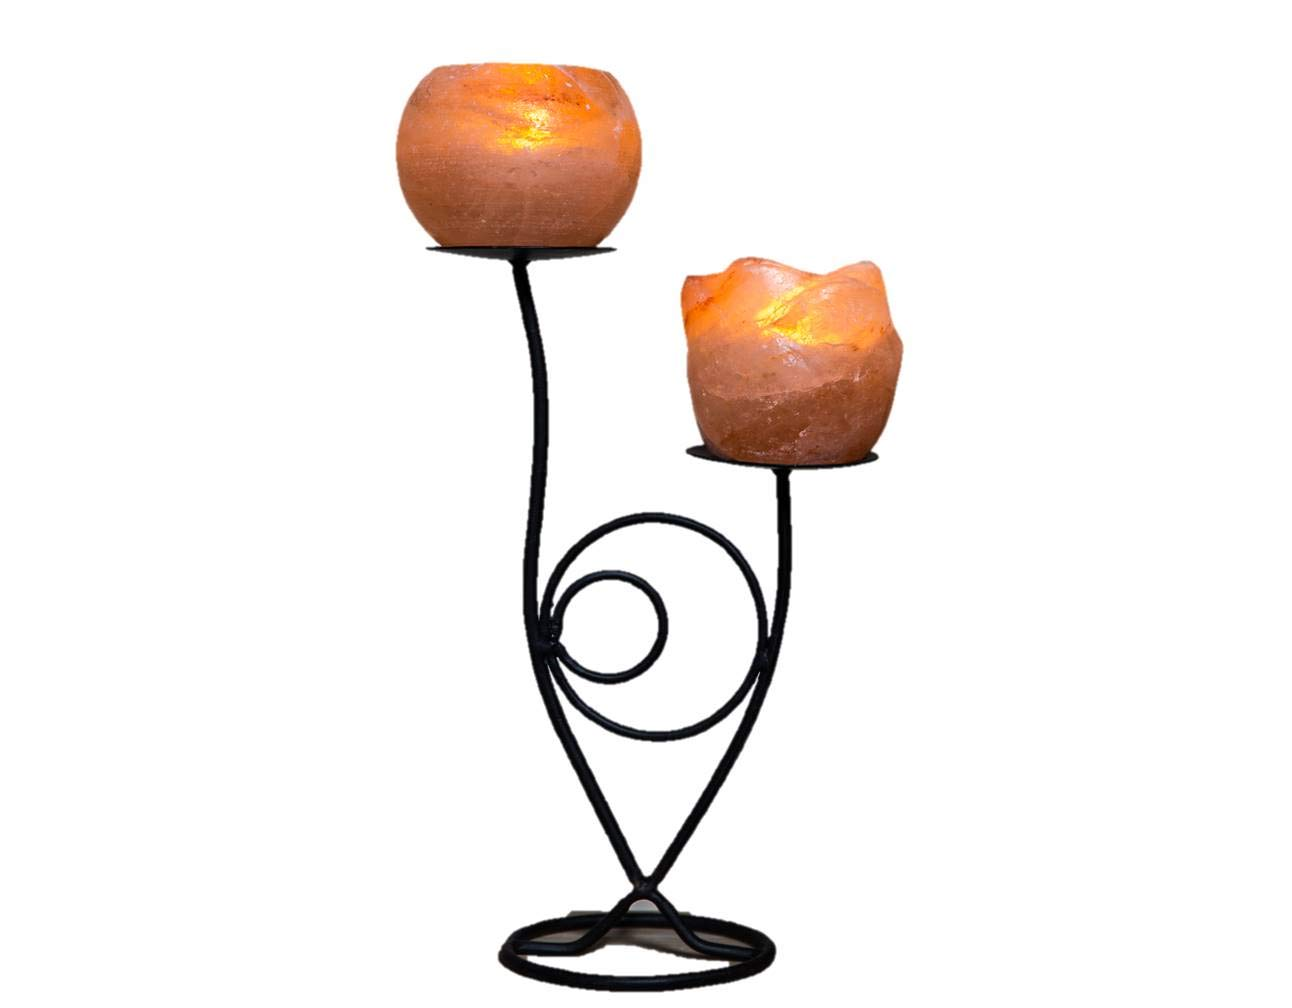 Crafted Wrought Iron Statuette Himalayan Ionising Rock Salt Tealight Candle Holder (Double Flower) Made To Inspire ltd